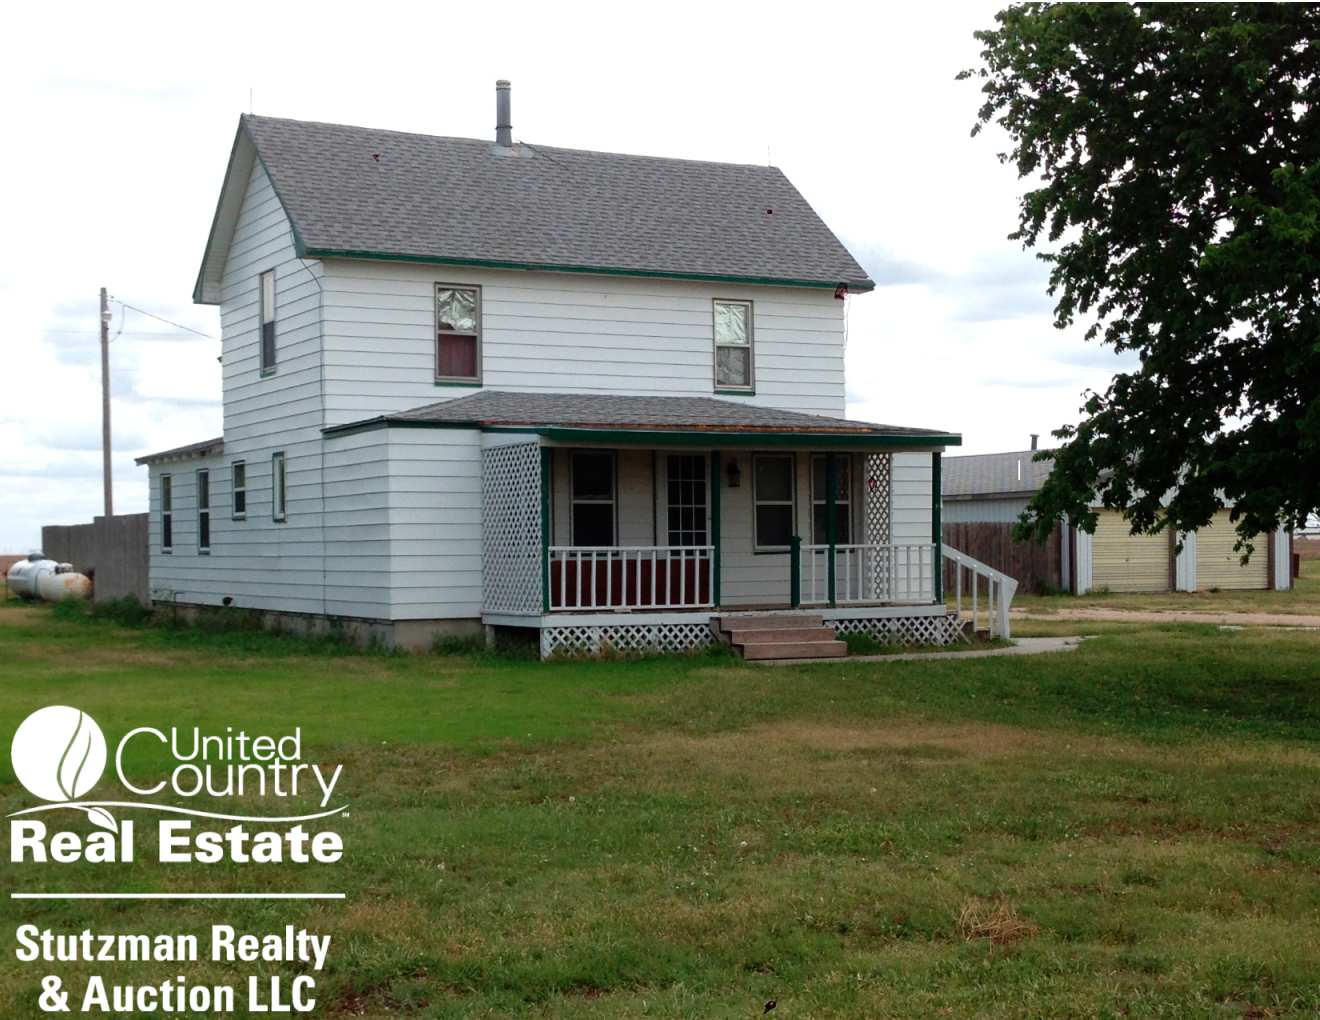 COUNTRY HOME & ACREAGE FOR SALE IN SOUTHWEST KANSAS